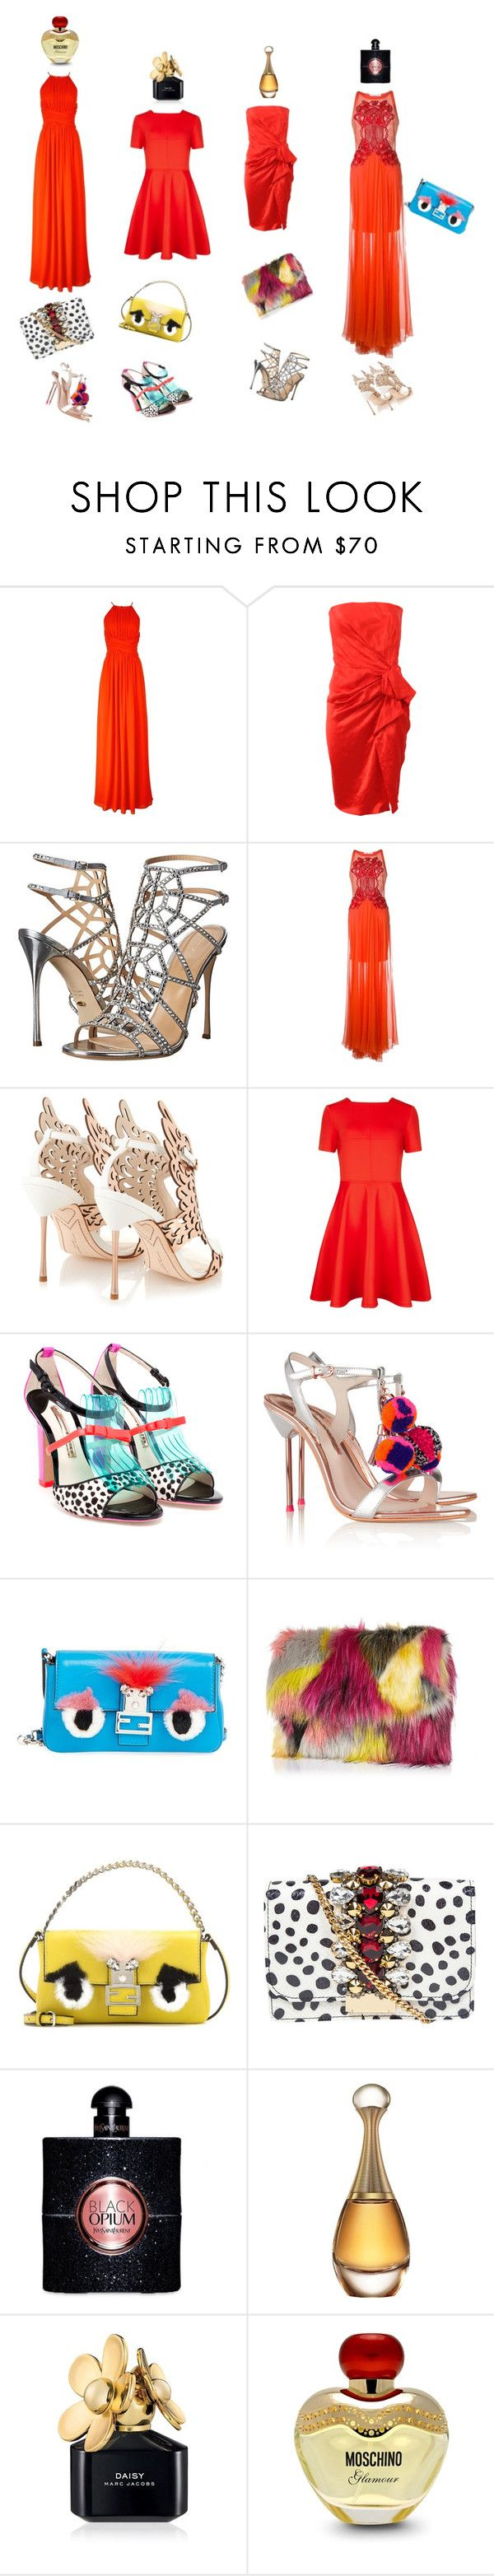 """New Year's Eve Lookbook"" by la-gatta-sul-tetto ❤ liked on Polyvore featuring Reiss, Lanvin, Sergio Rossi, Zuhair Murad, Sophia Webster, Ted Baker, Fendi, River Island, GEDEBE and Yves Saint Laurent"